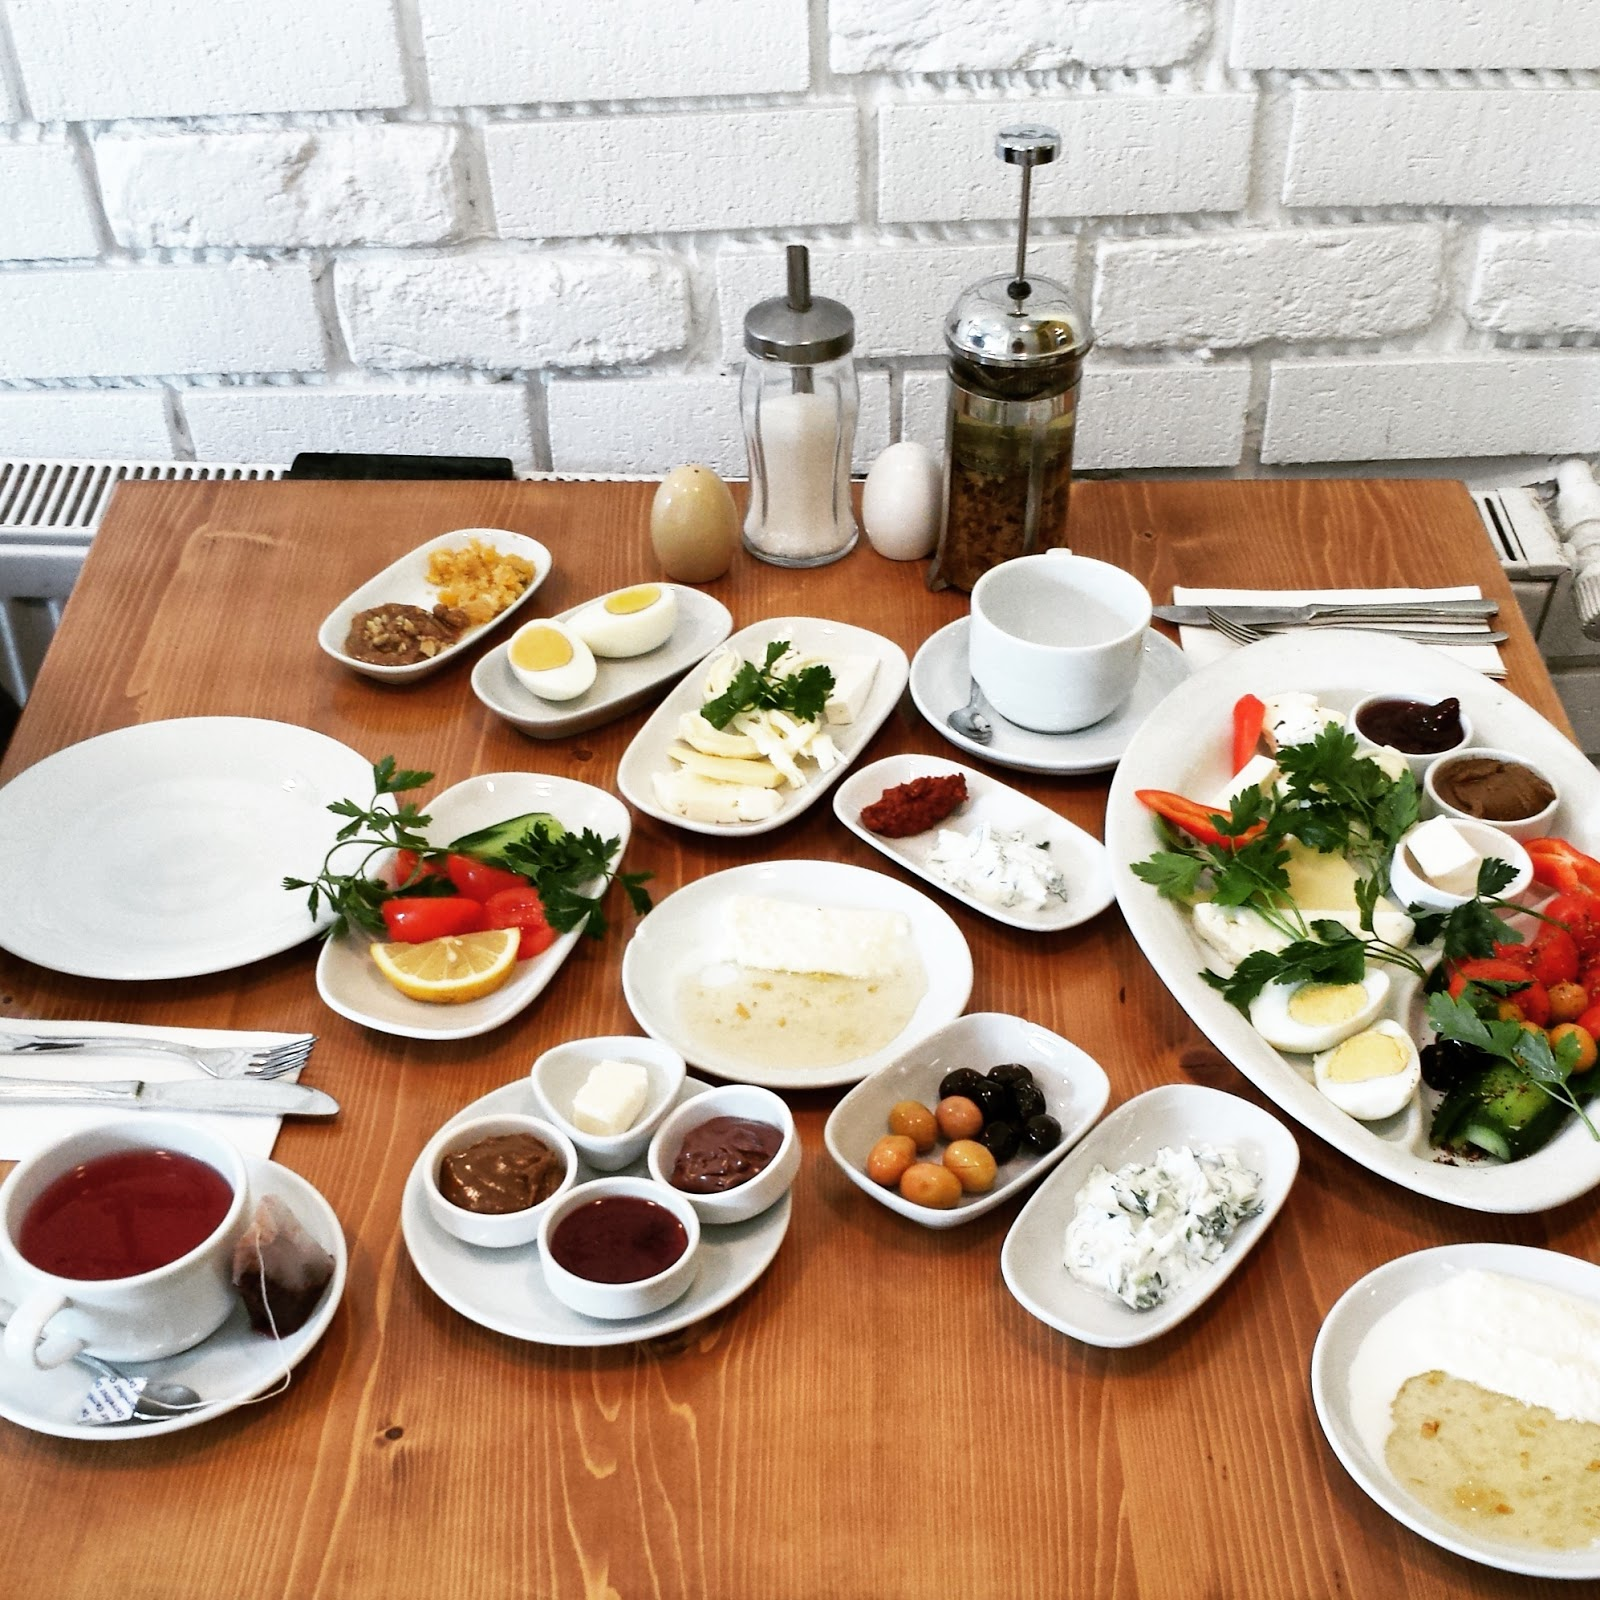 Traditional Turkish breakfast at Van Kahlvati Evi in Cihangir Istanbul  |  Postcard from Istanbul on afeathery*nest  | http://afeatherynest.com